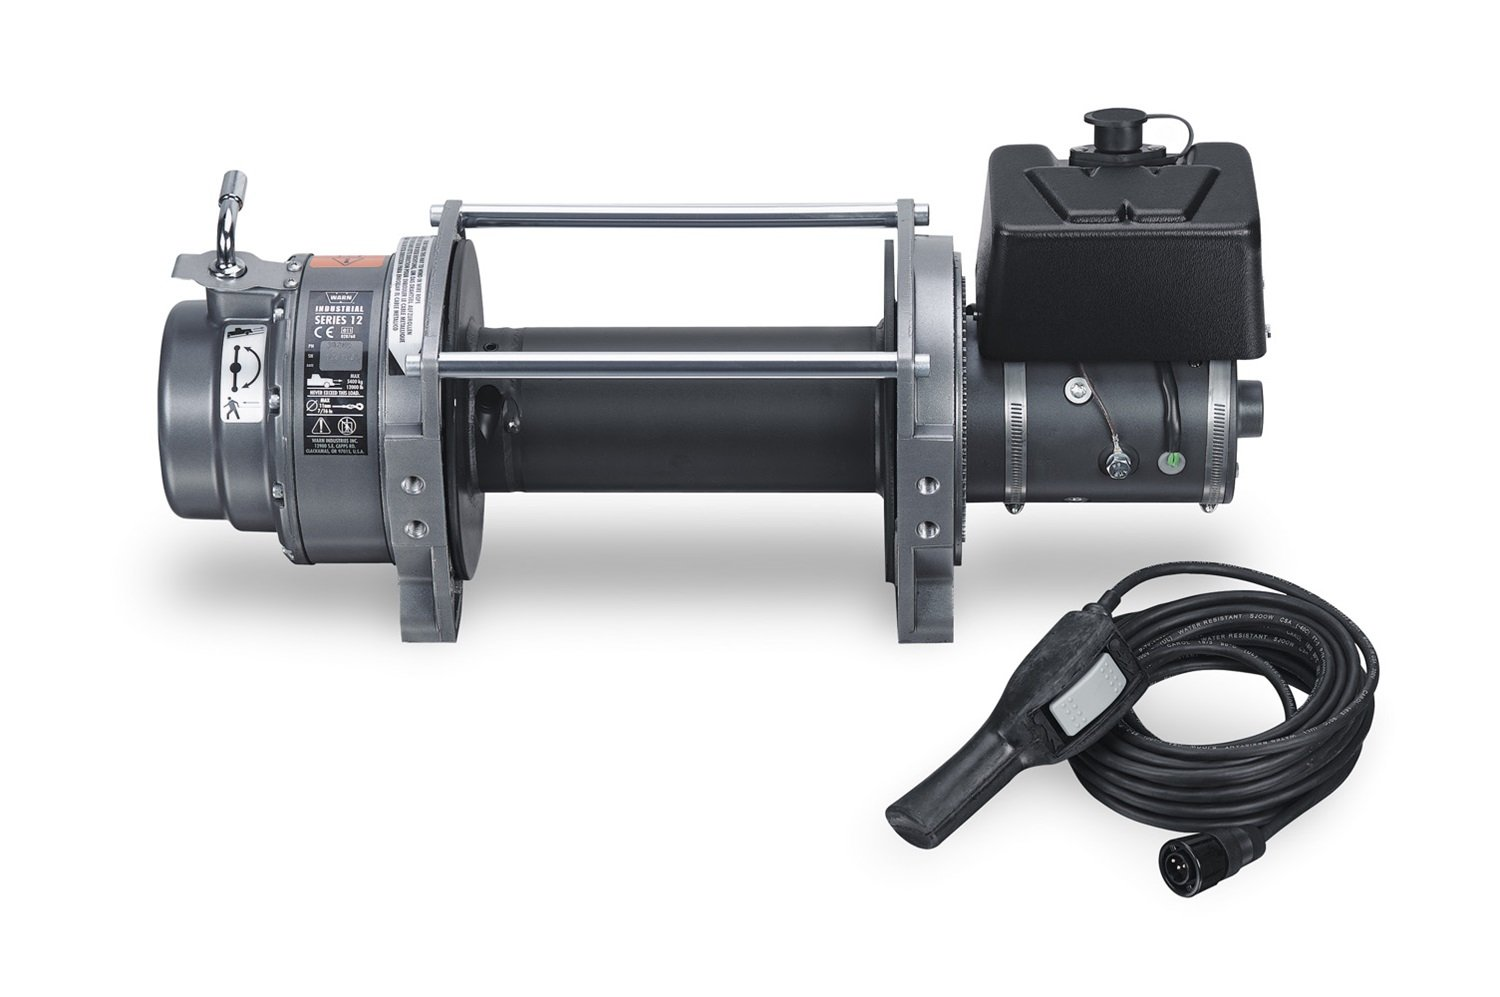 WARN 30289 Series 12 DC Industrial Electric Winch